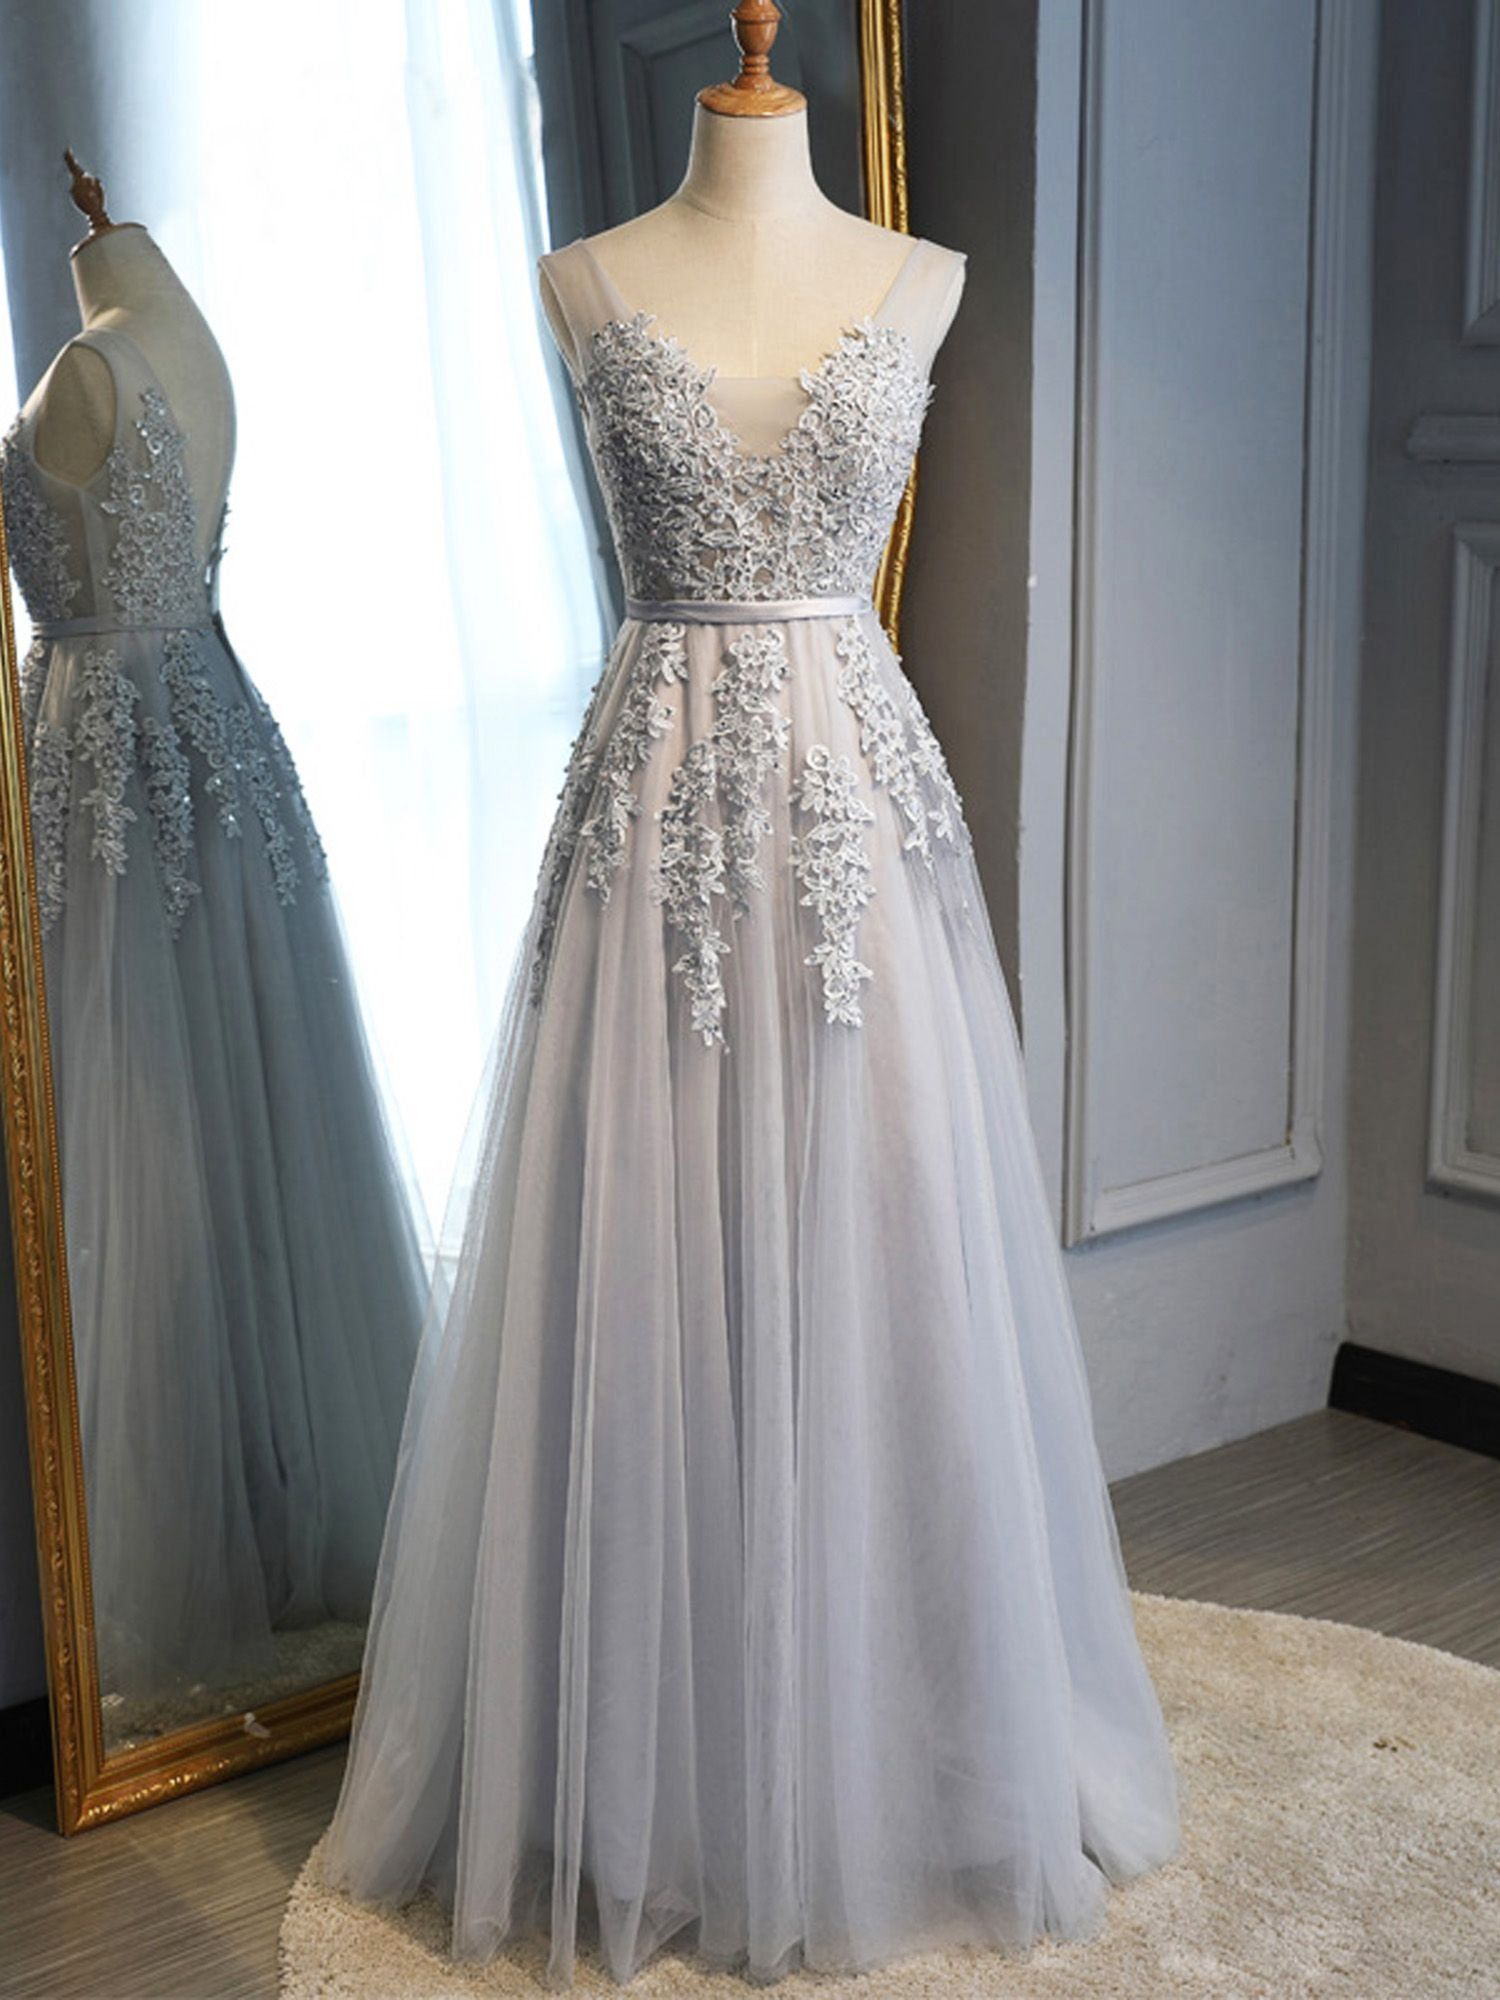 Ever Pretty Ever Pretty Womens Floral Lacey Elegant Prom Bridesmaid Dresses For Women 07544 Grey Us4 Grey Prom Dress Cute Prom Dresses Prom Dresses For Teens [ 2000 x 1500 Pixel ]